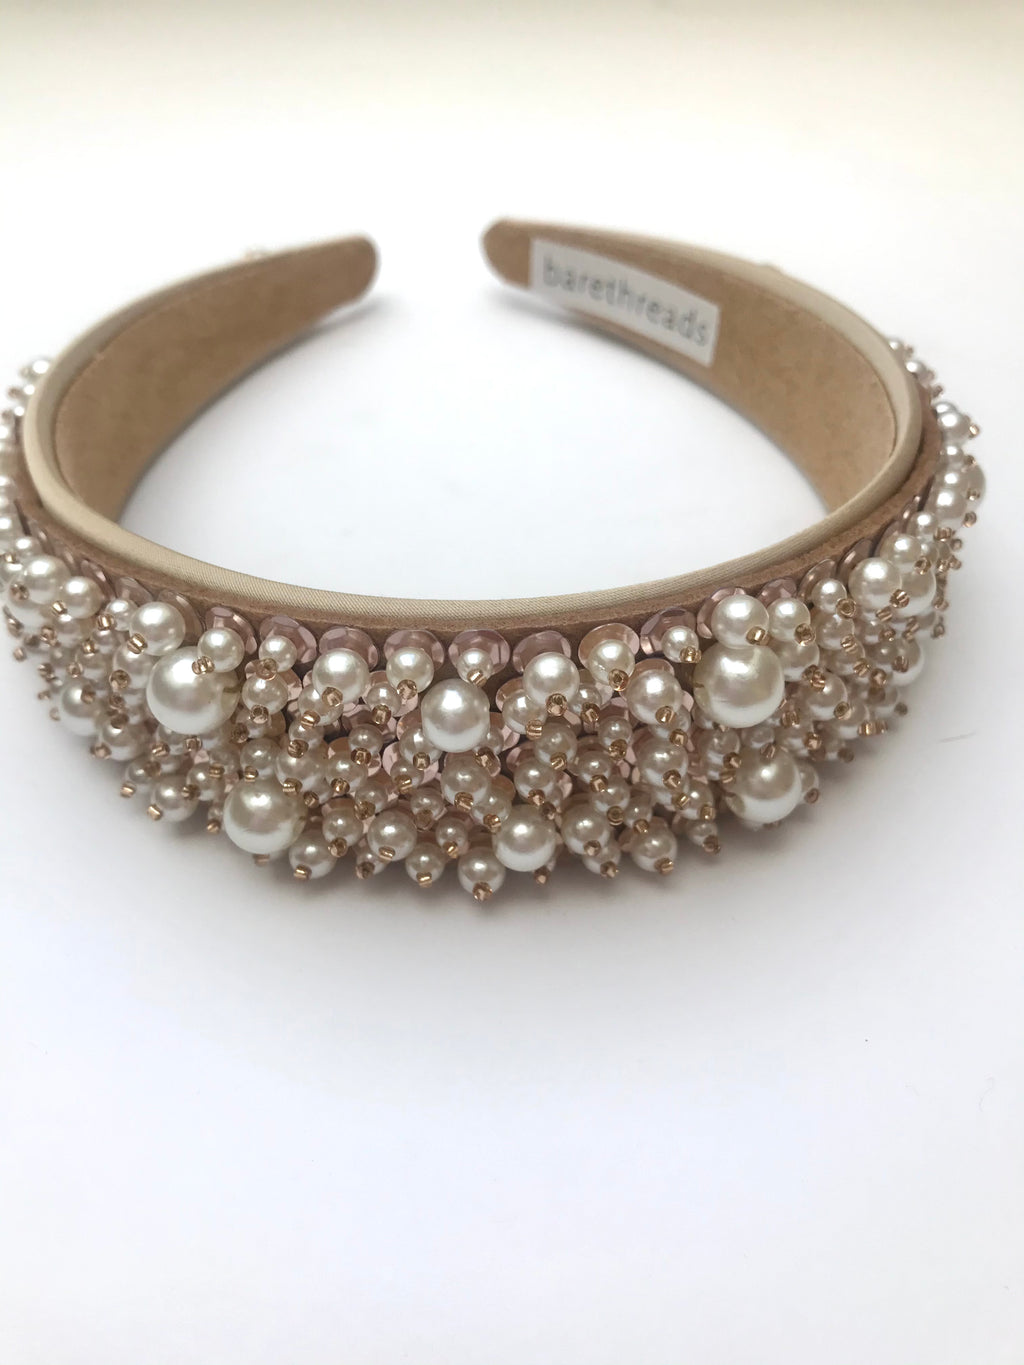 THE DIANA PEARL AND BEADED HEADBAND